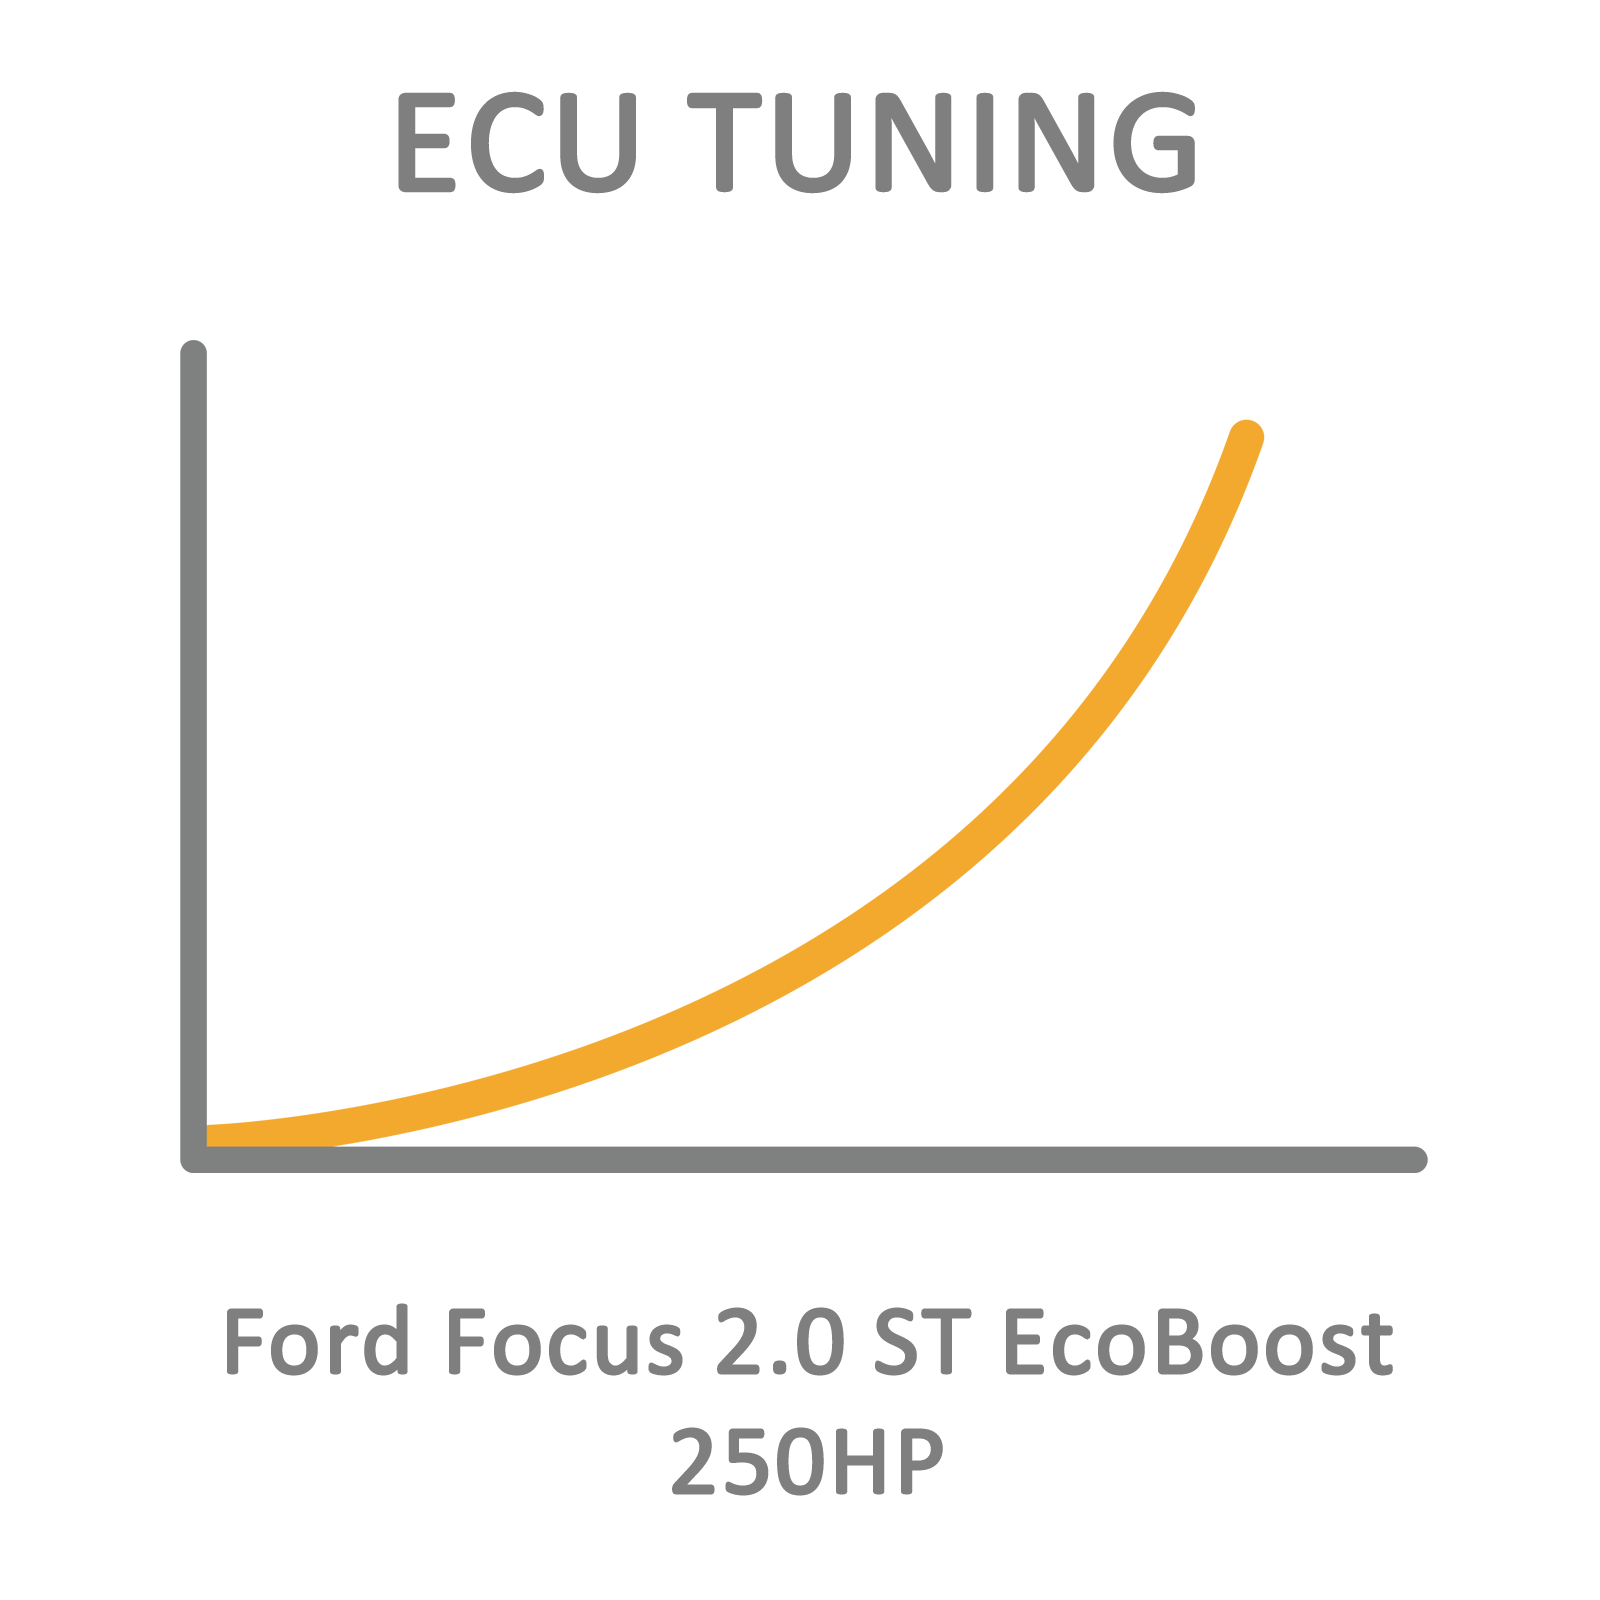 Ford Focus 2.0 ST EcoBoost 250HP ECU Tuning Remapping